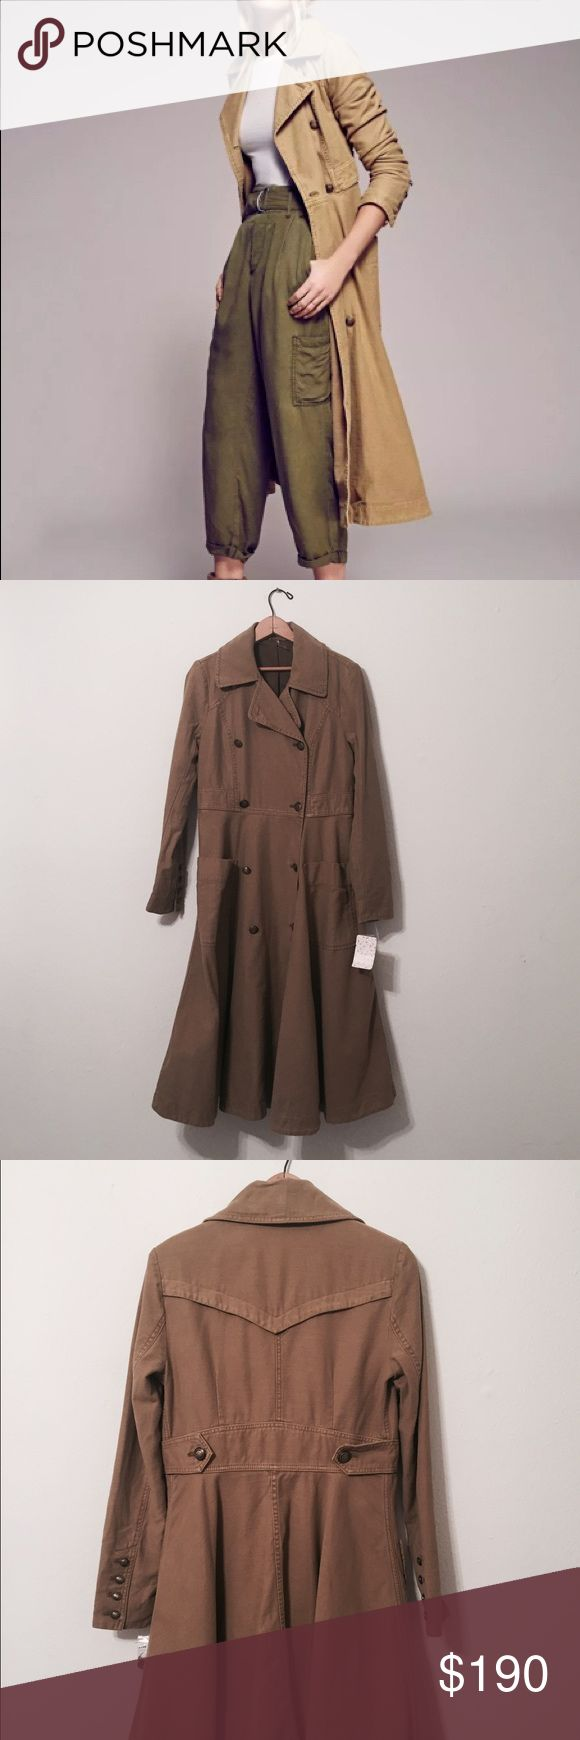 FREE PEOPLE Khaki Trench Coat New with tags, khaki colored trench coat from free people! New and comes with its tags, never worn and has a fabulous look with beautiful button design! Free People Jackets & Coats Trench Coats